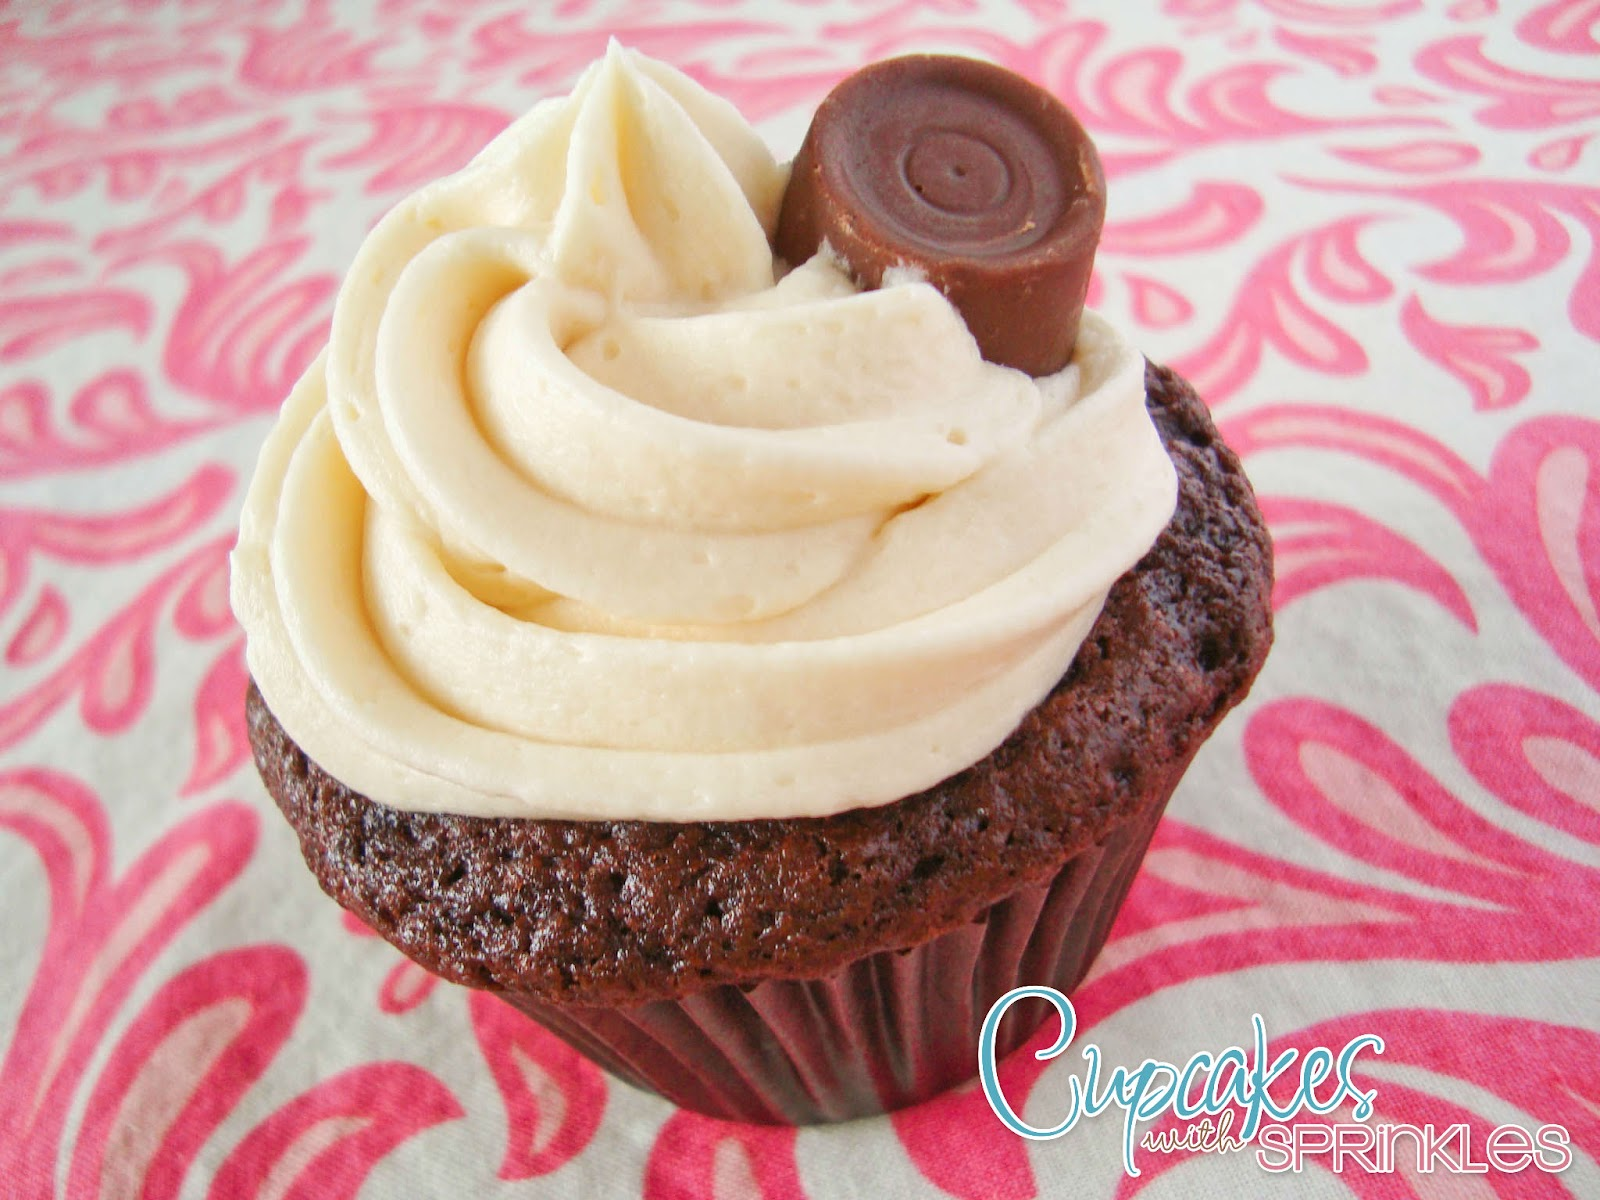 Cupcakes with Sprinkles: Rolo Cupcakes